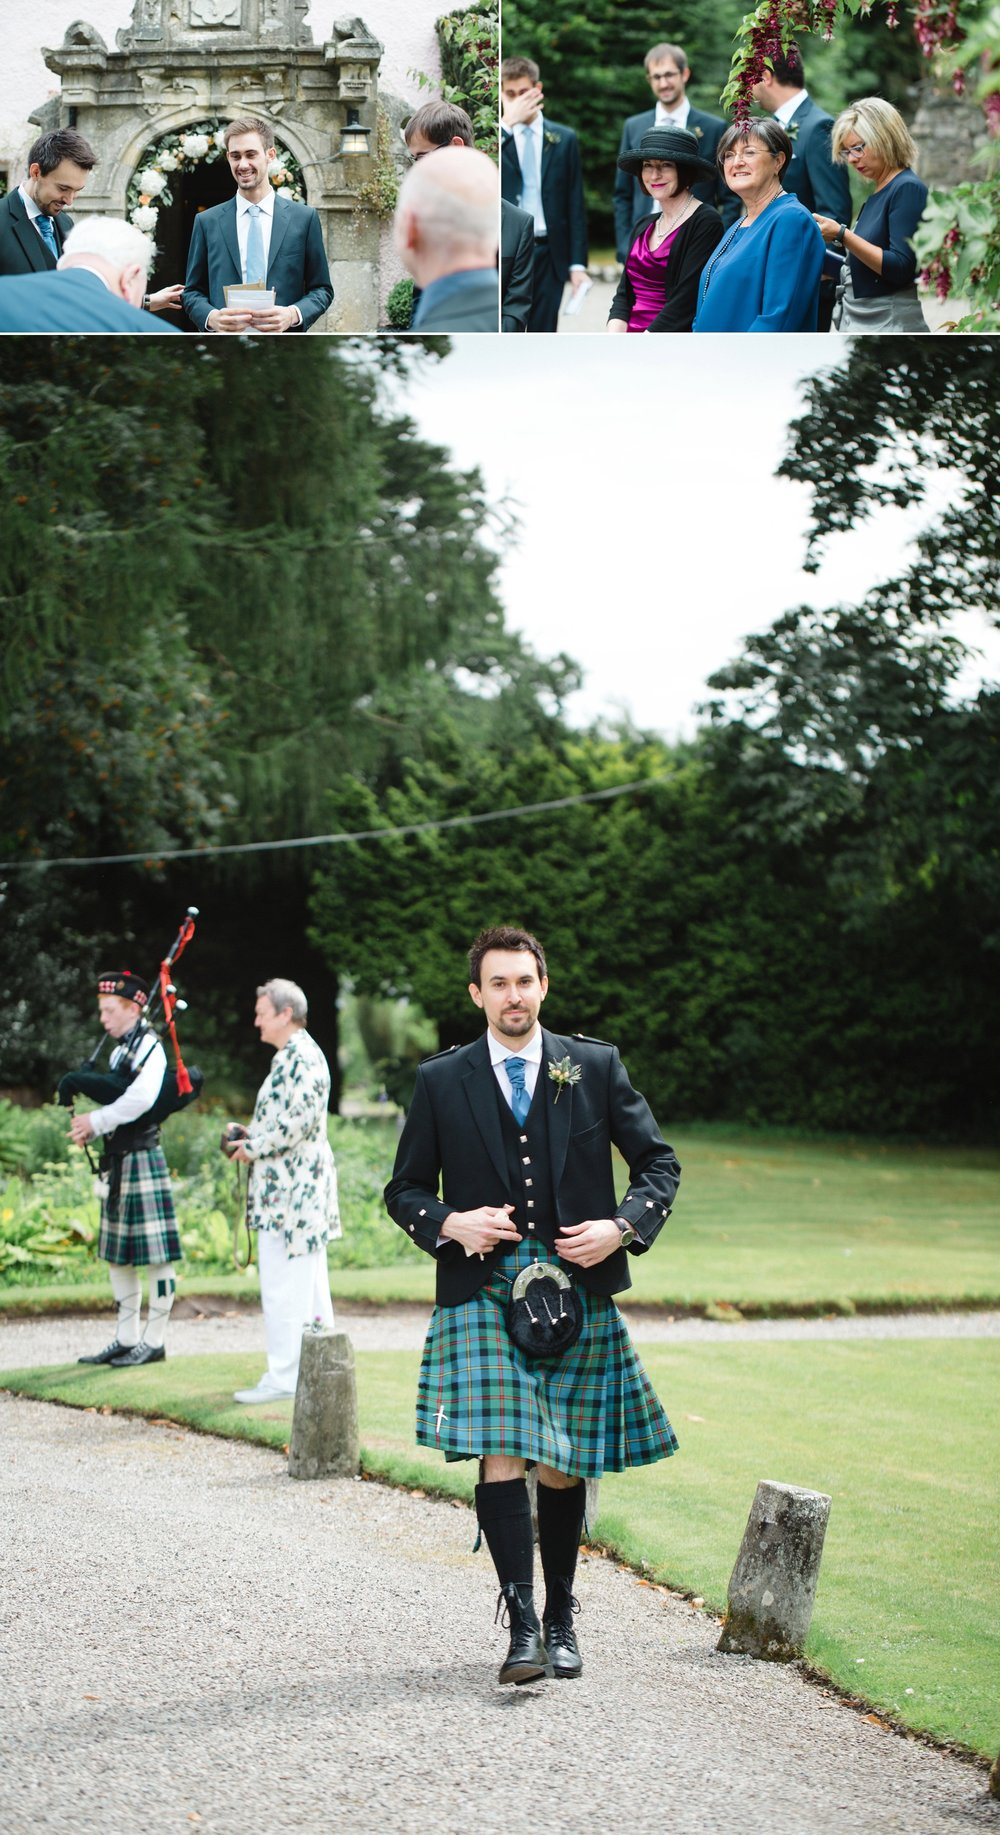 ScottishItalianRomanCampWedding6-3.jpg